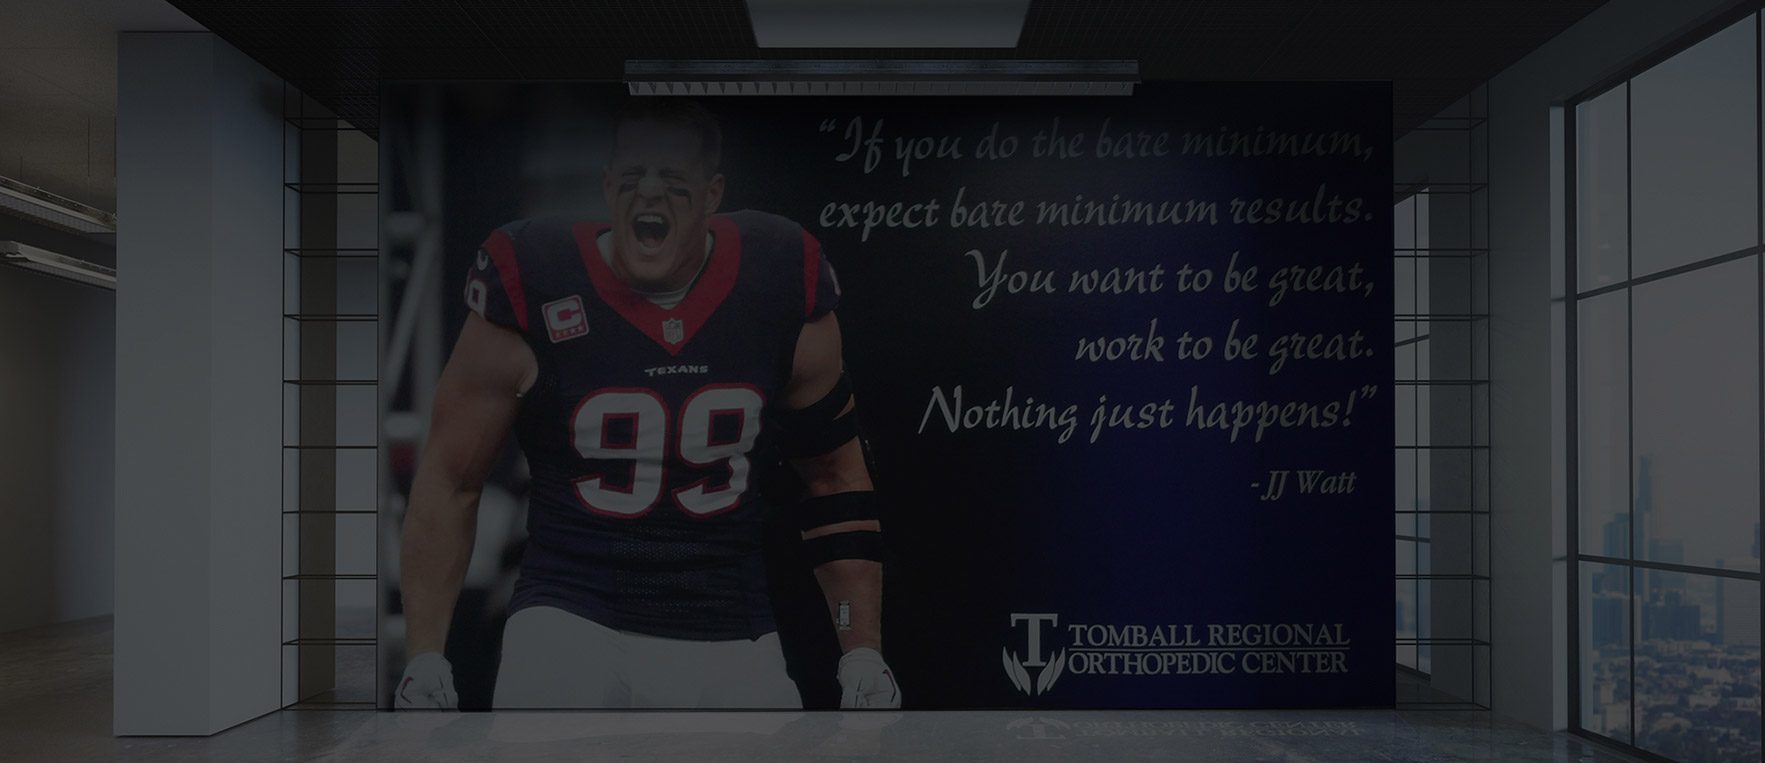 Houston Texans interior graphic on a wall